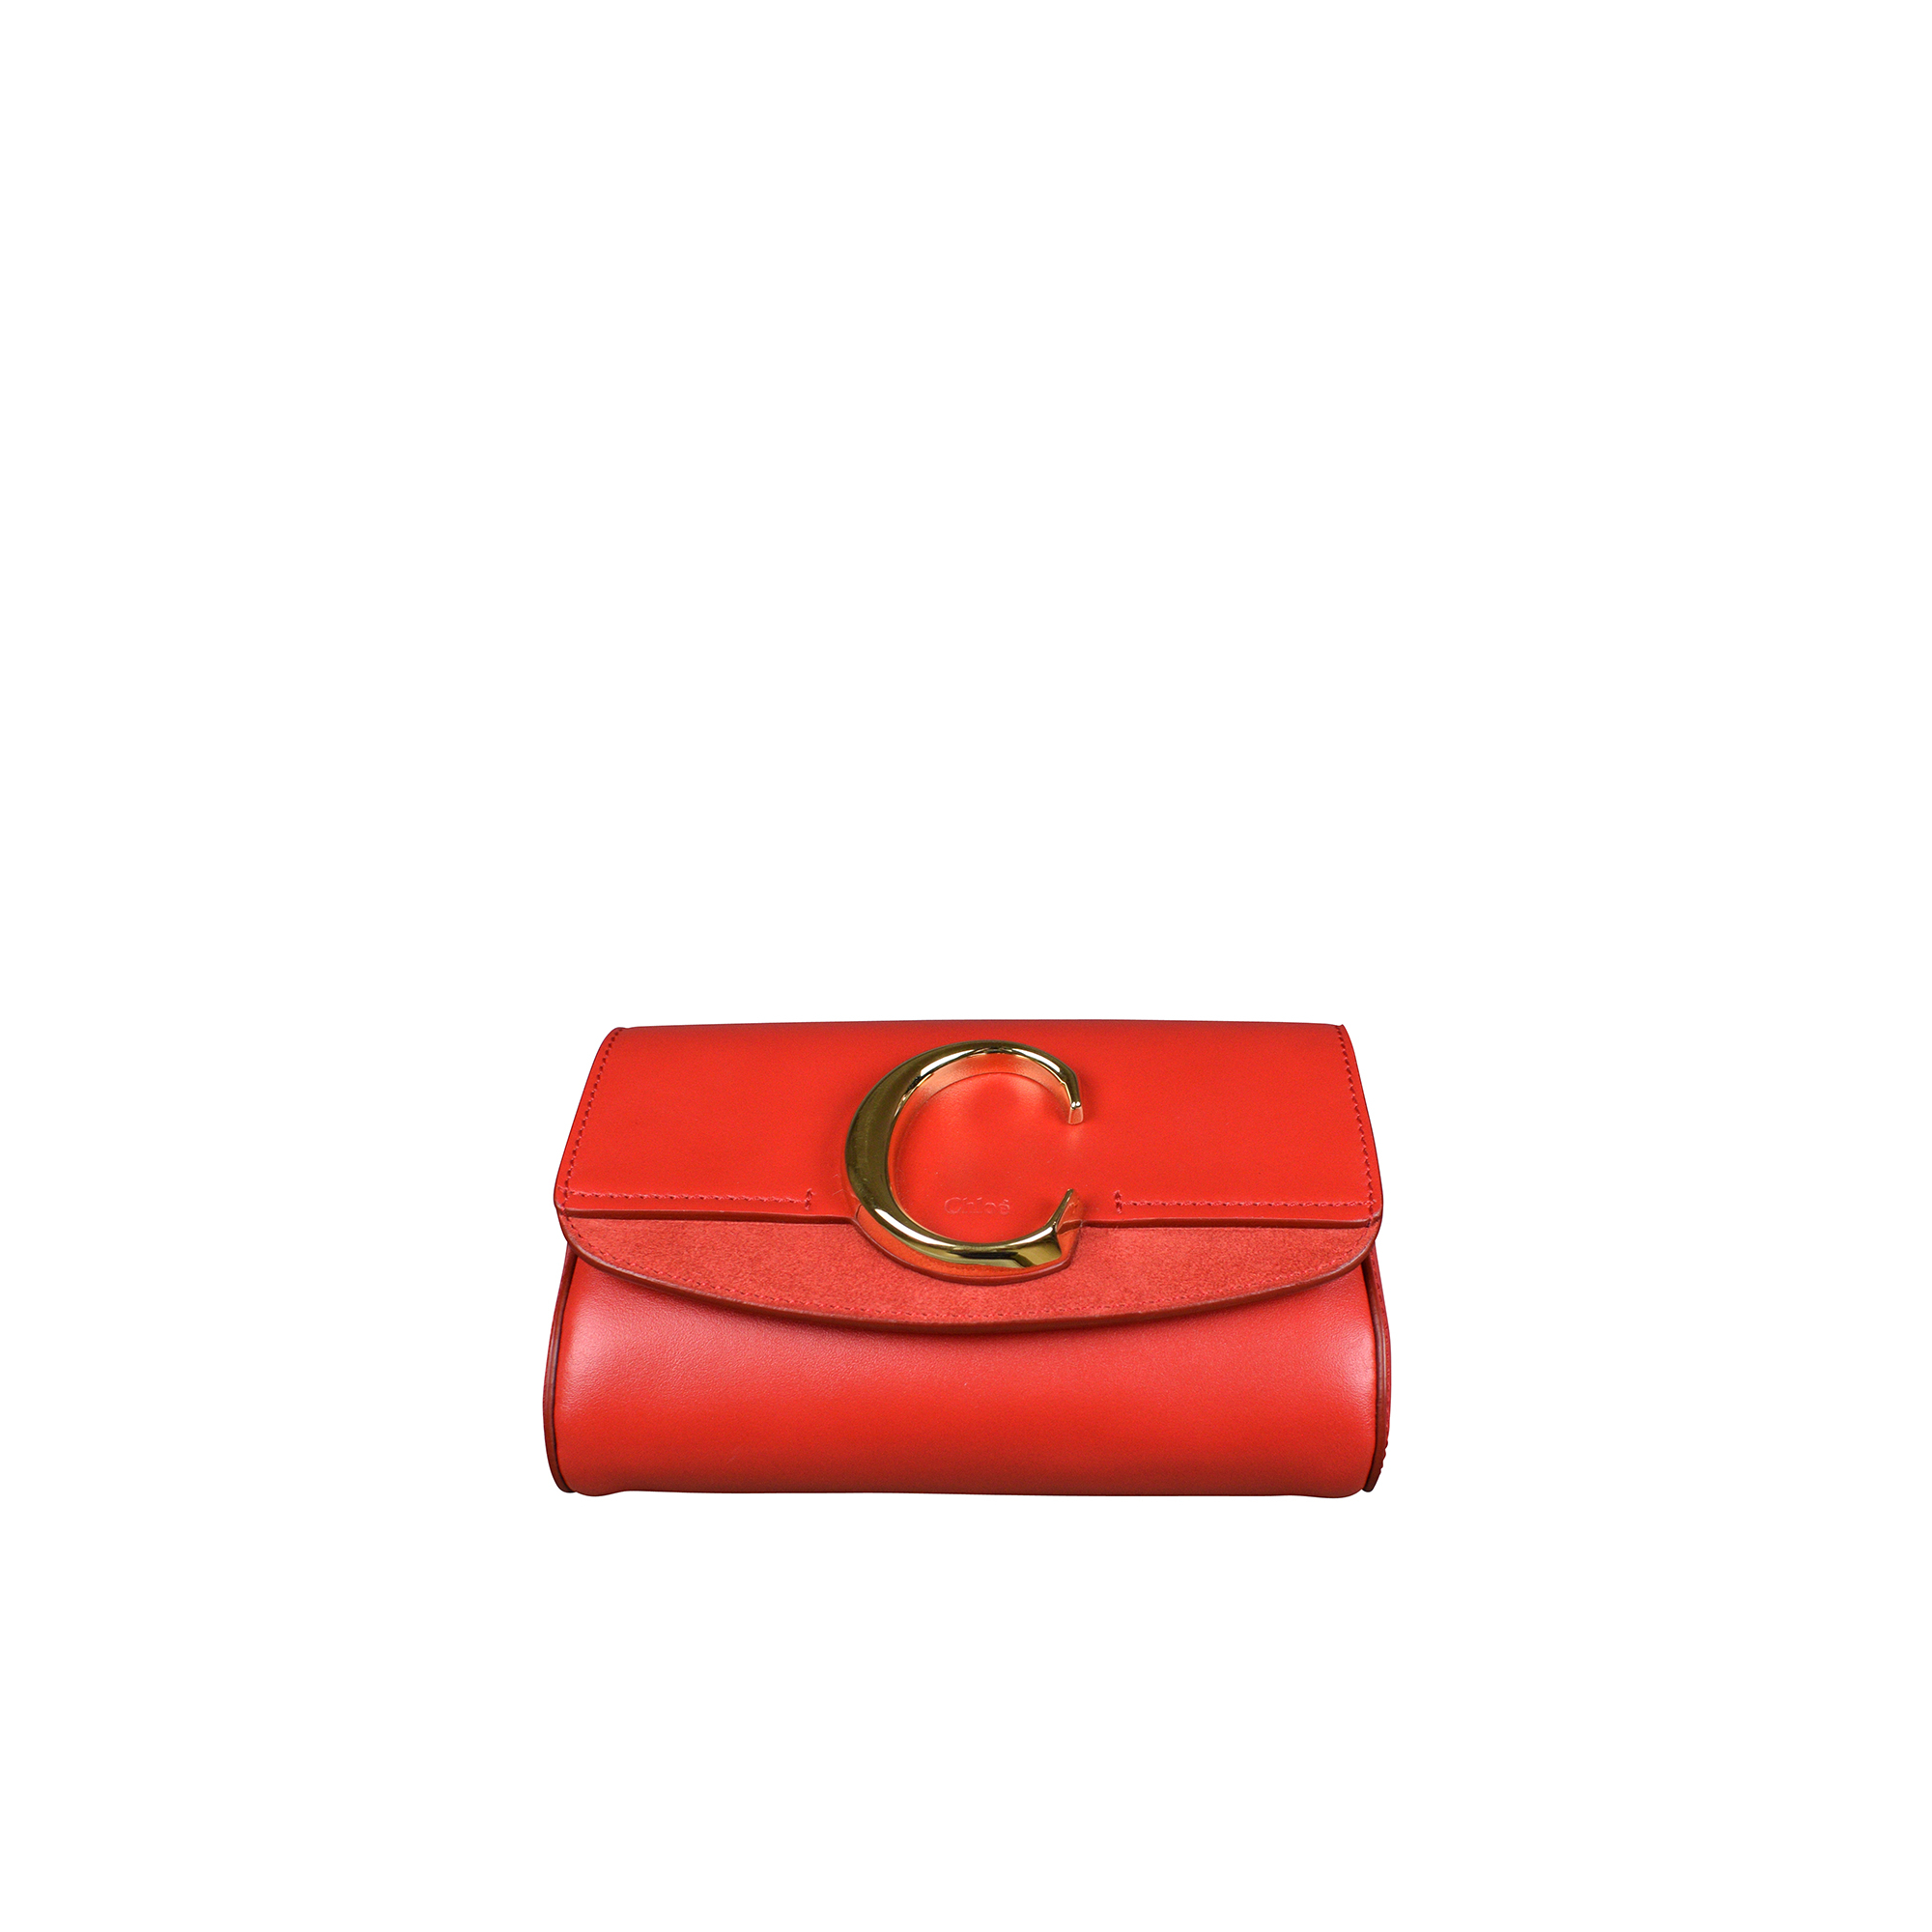 Chloé C red belt bag in suede and leather.